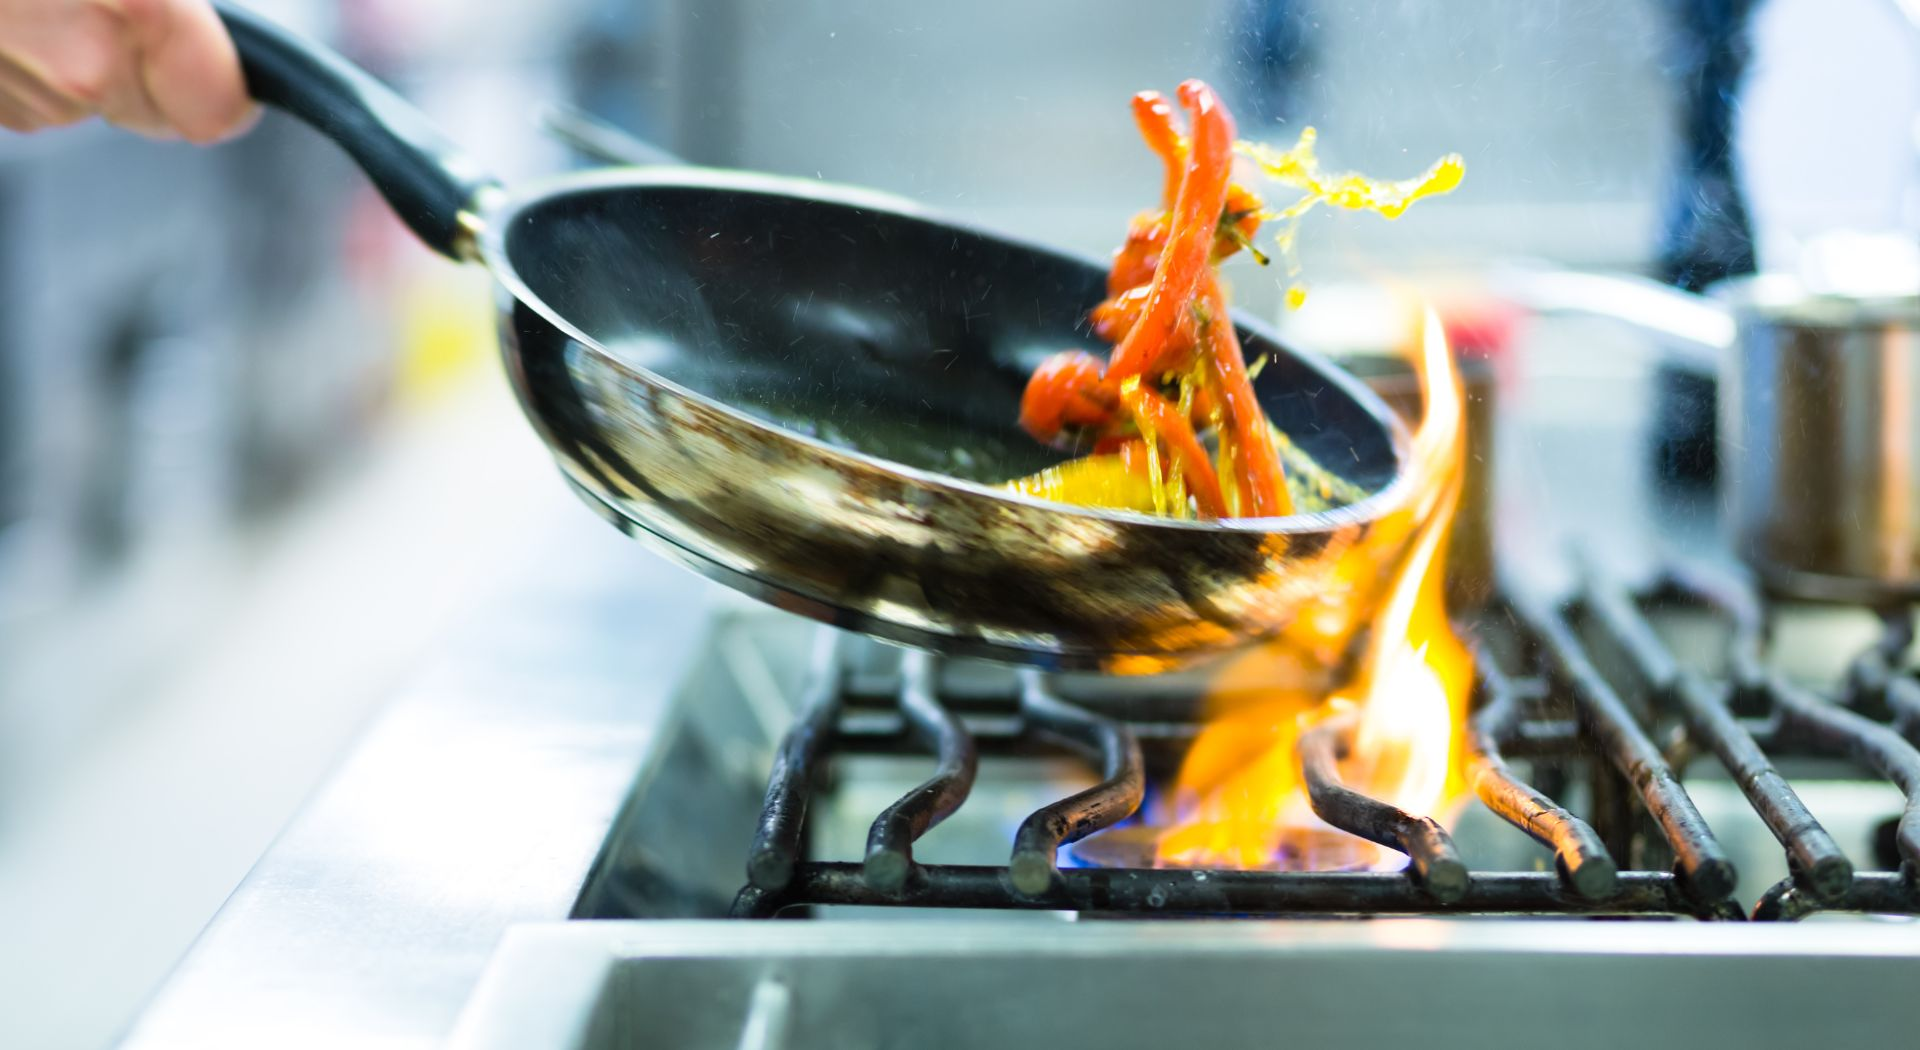 Frying pan flipping food over high flame